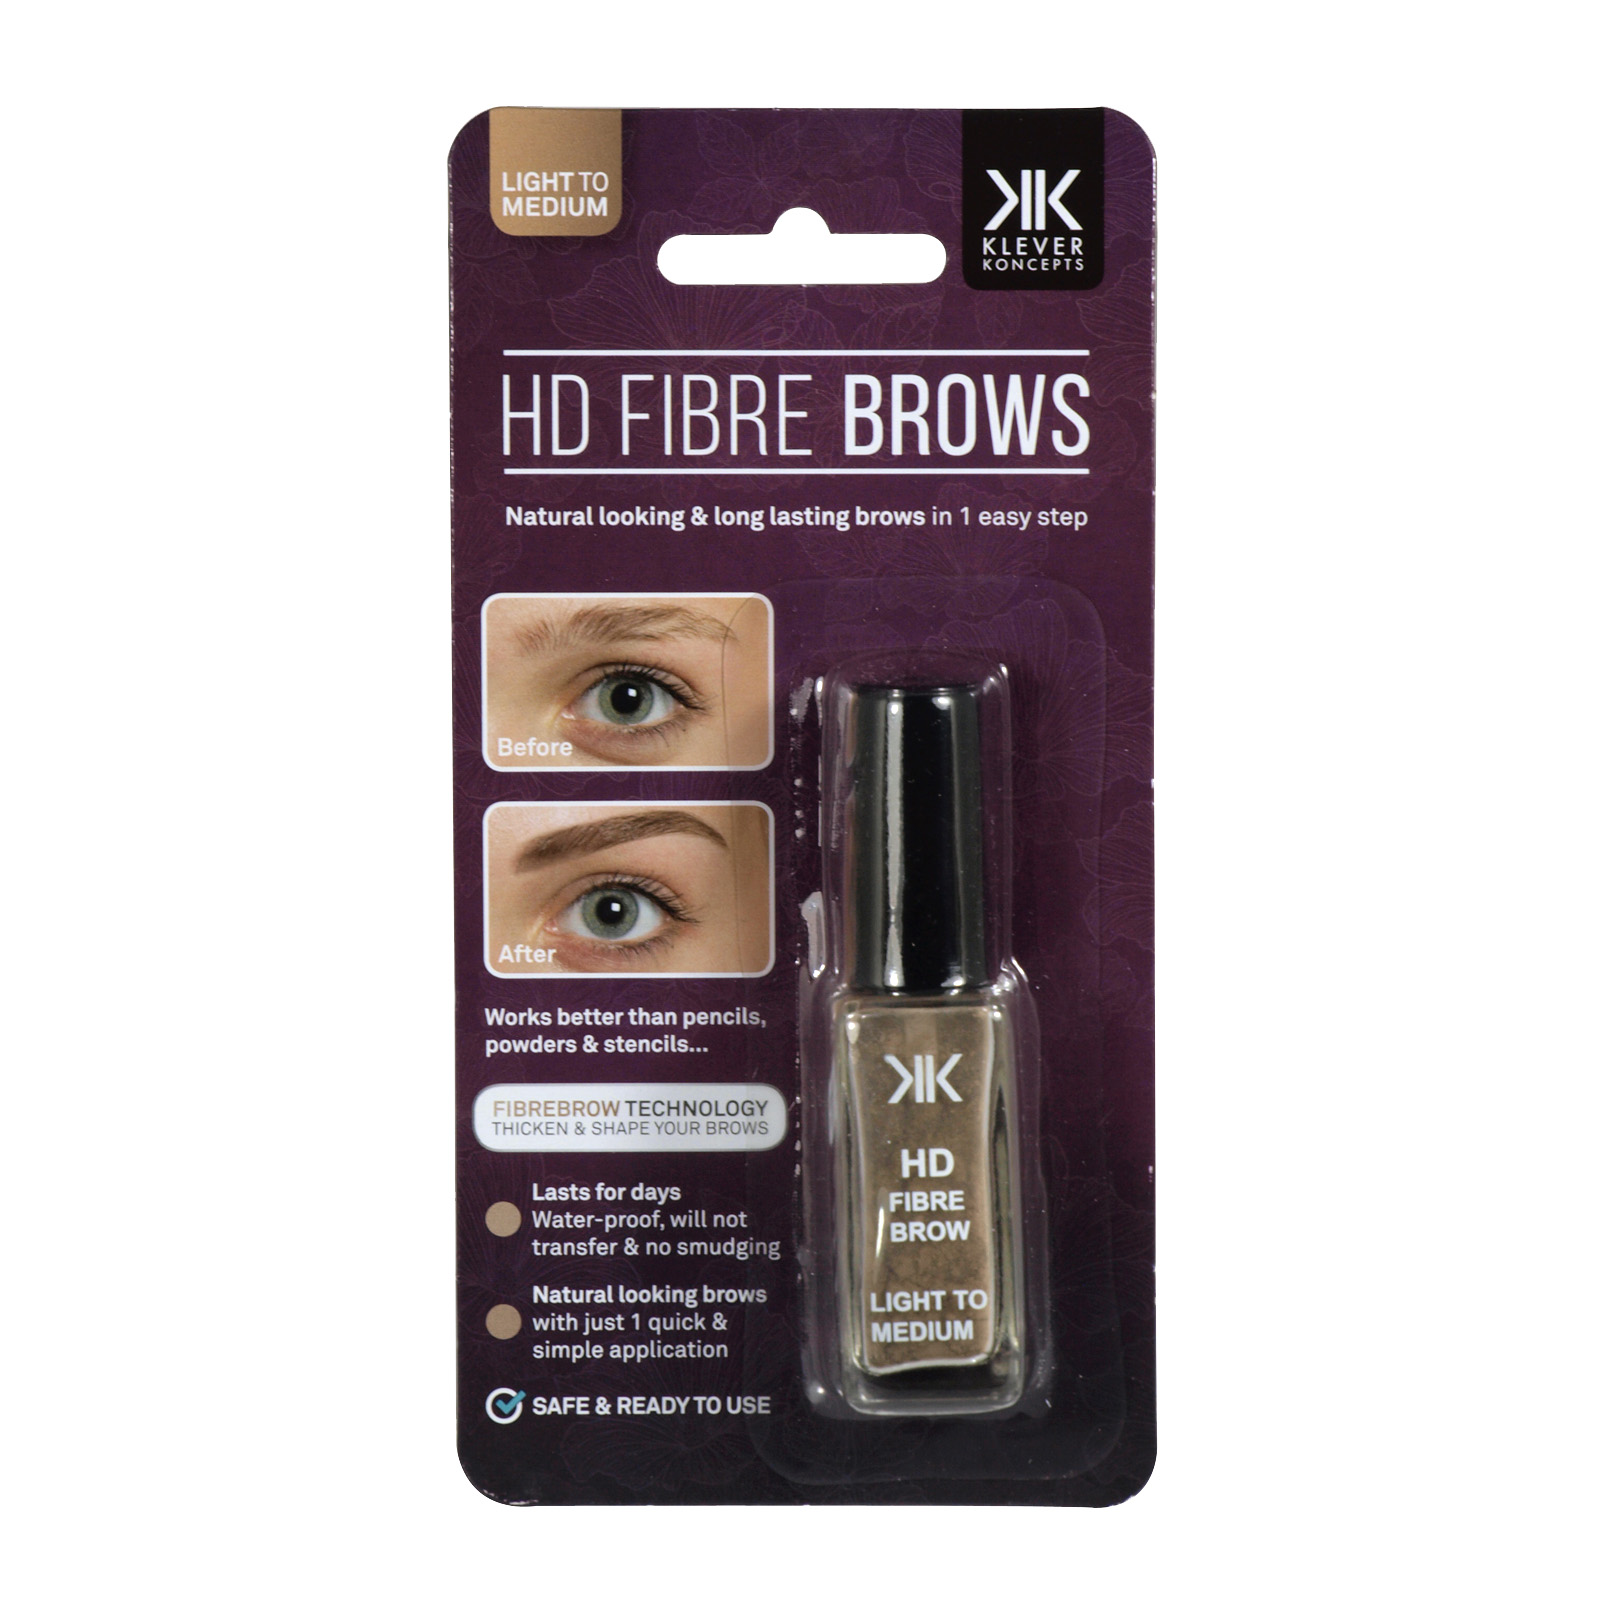 DMM HD FIBRE BROWS LIGHT TO MEDIUM